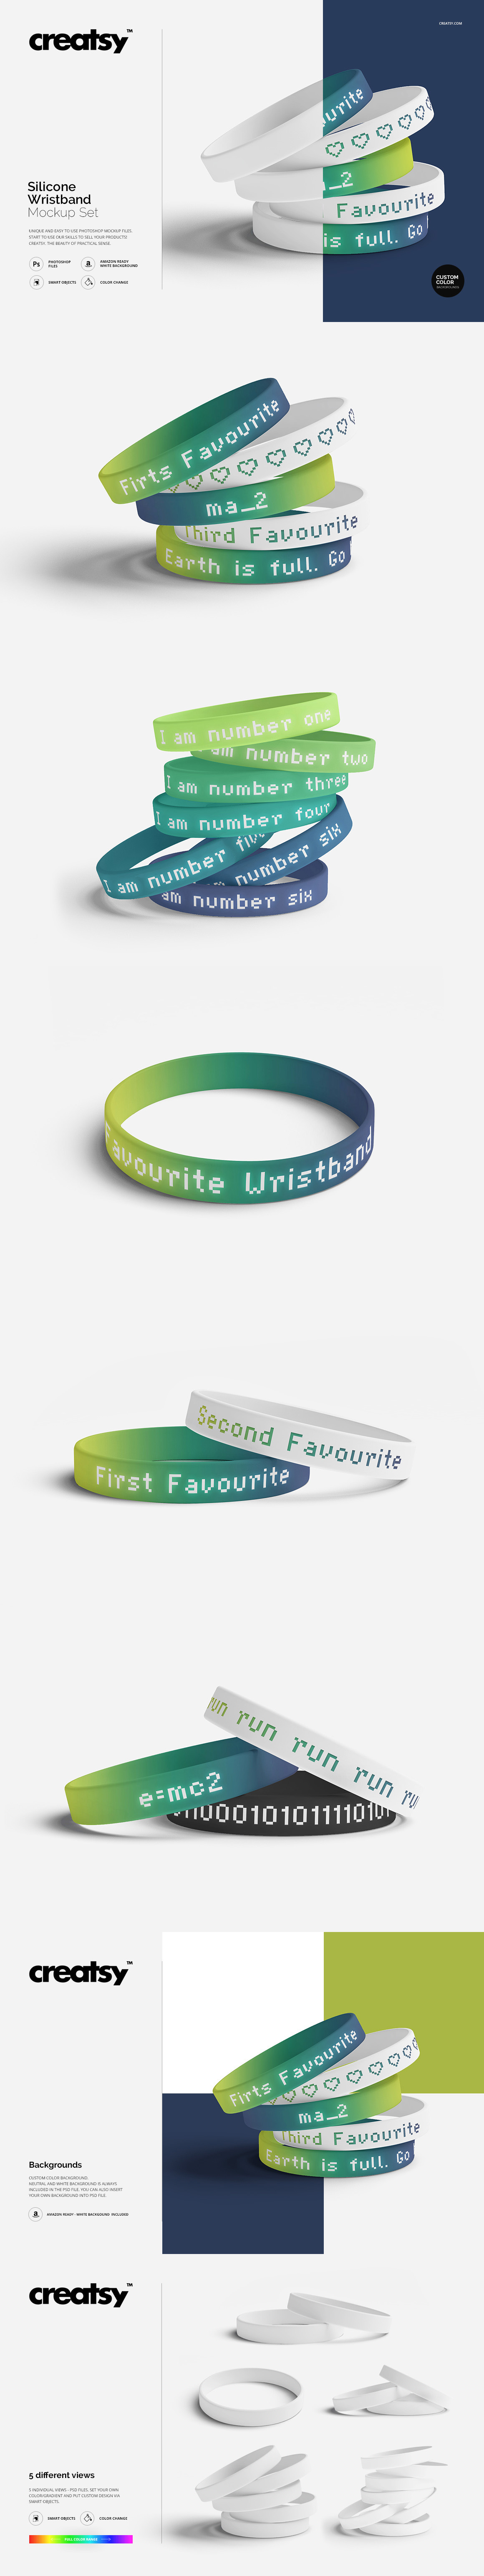 products band for wrist wristband days life bracelet download